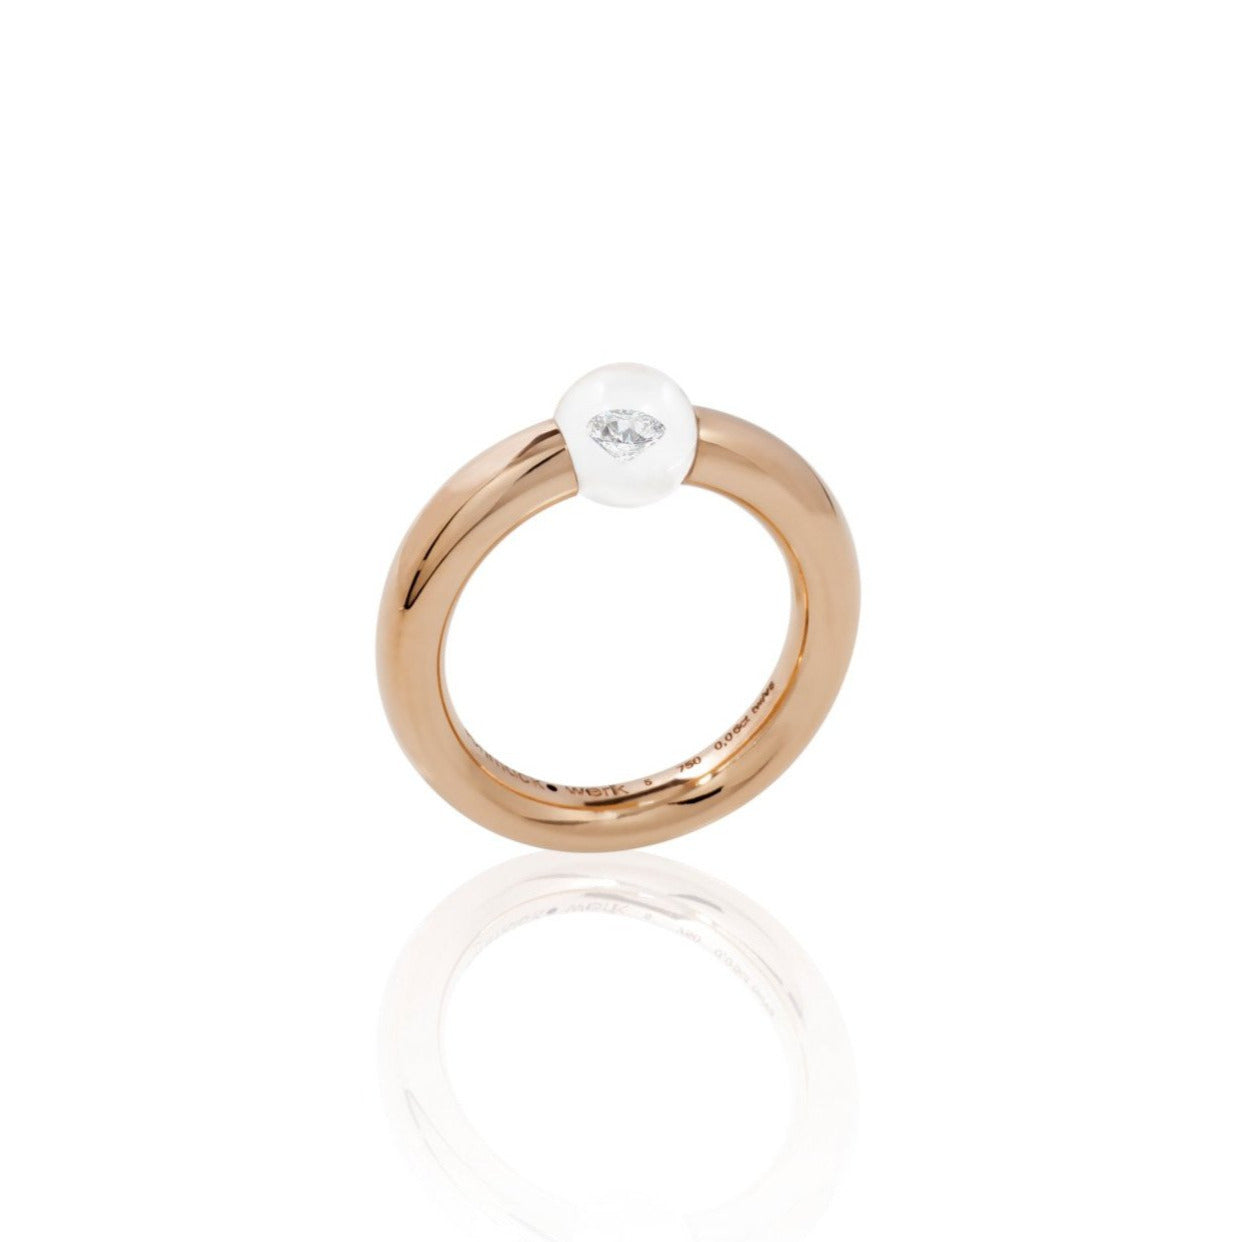 Schmuckwerk-Glasklar-Ring-Rose-Gold-Brillant-Glaskugel-weissDR267RG